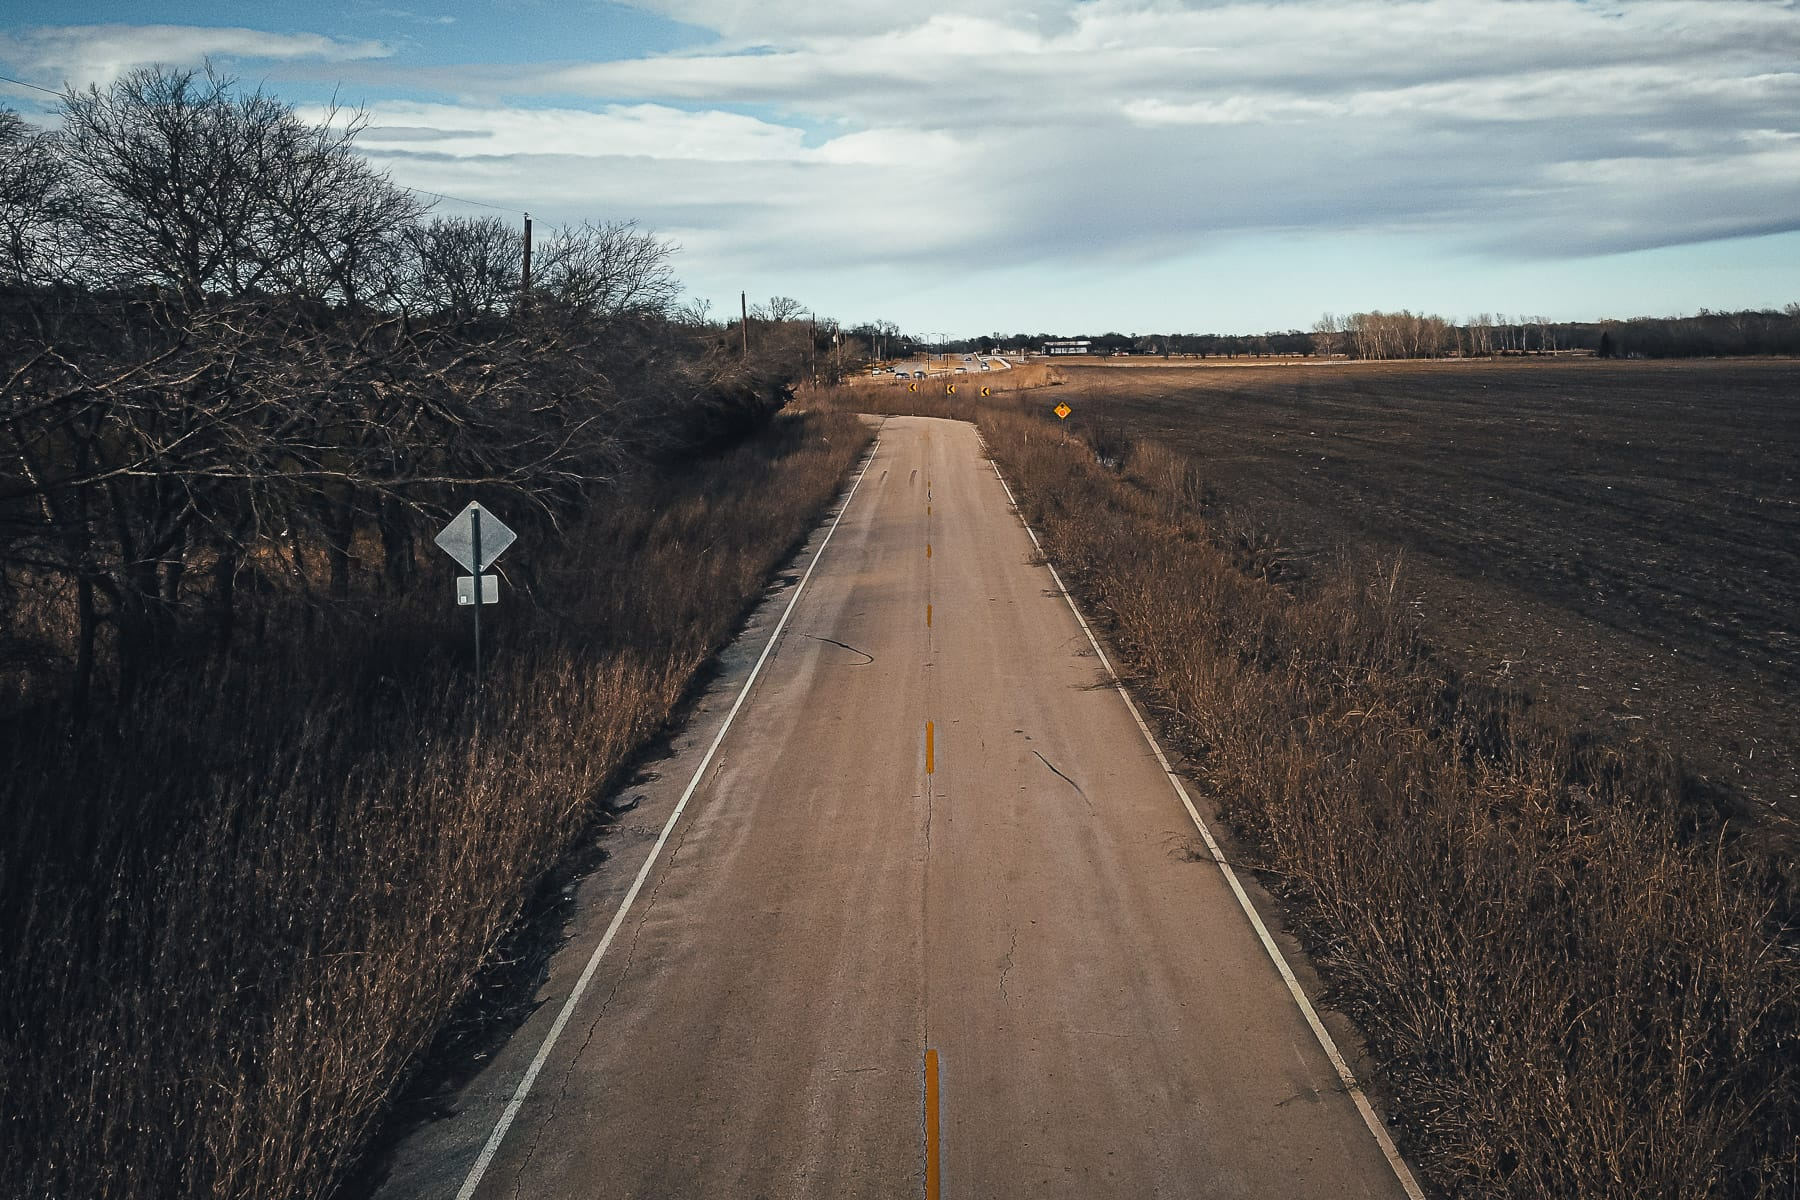 An aerial view of a disused road near McKinney, Texas.